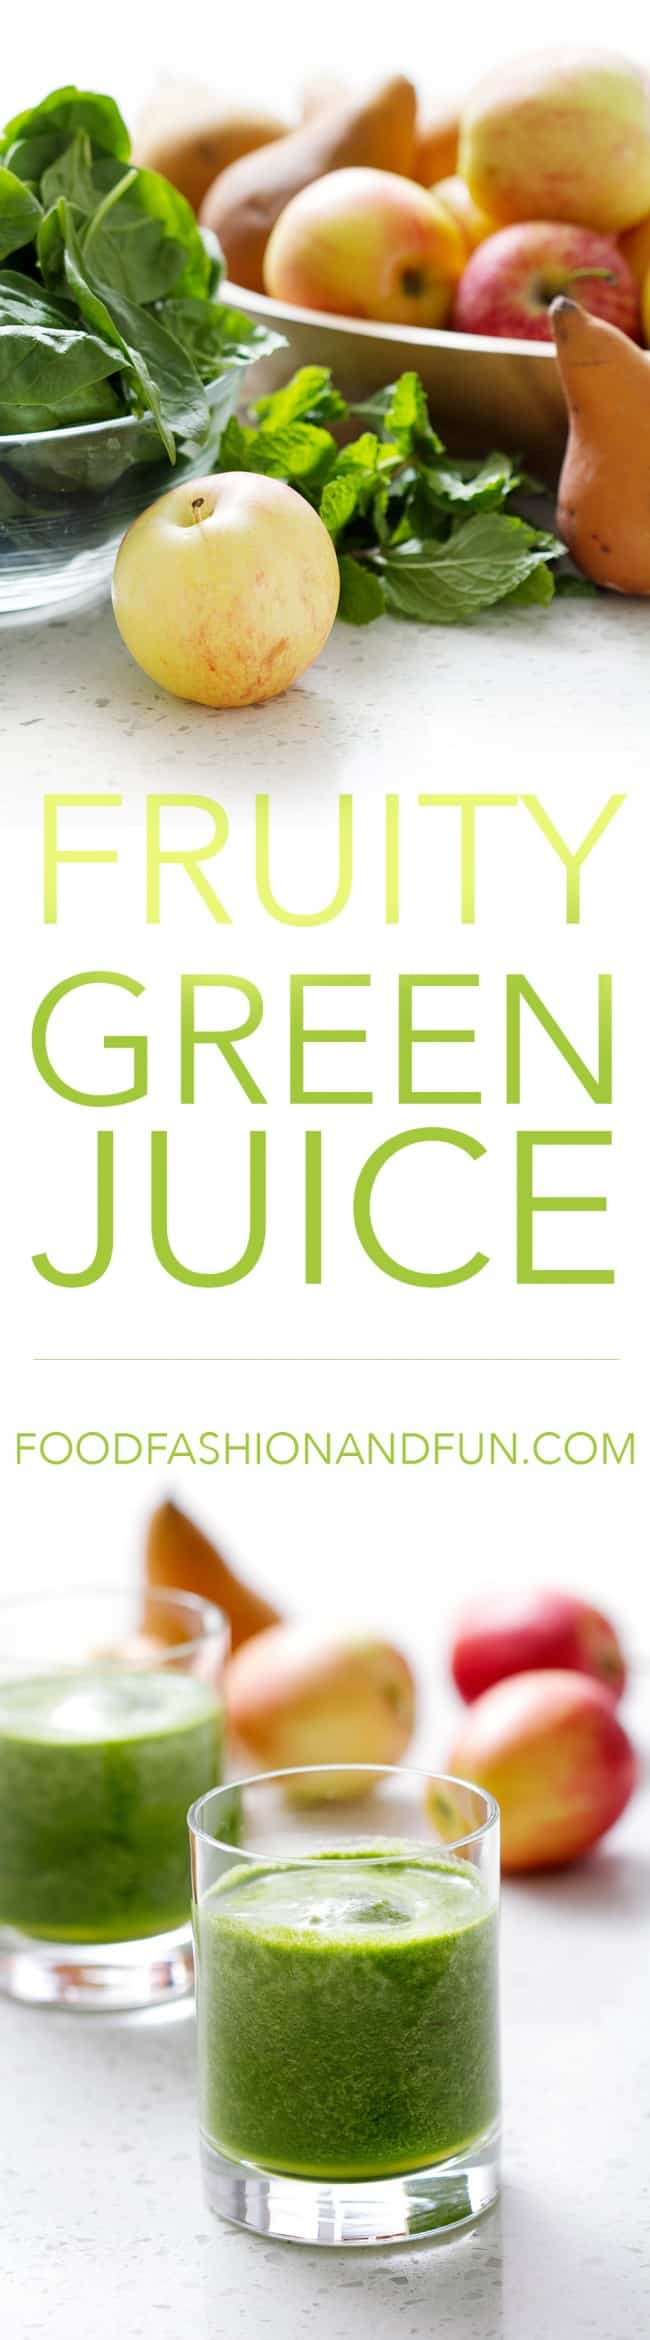 Fruity Green Juice